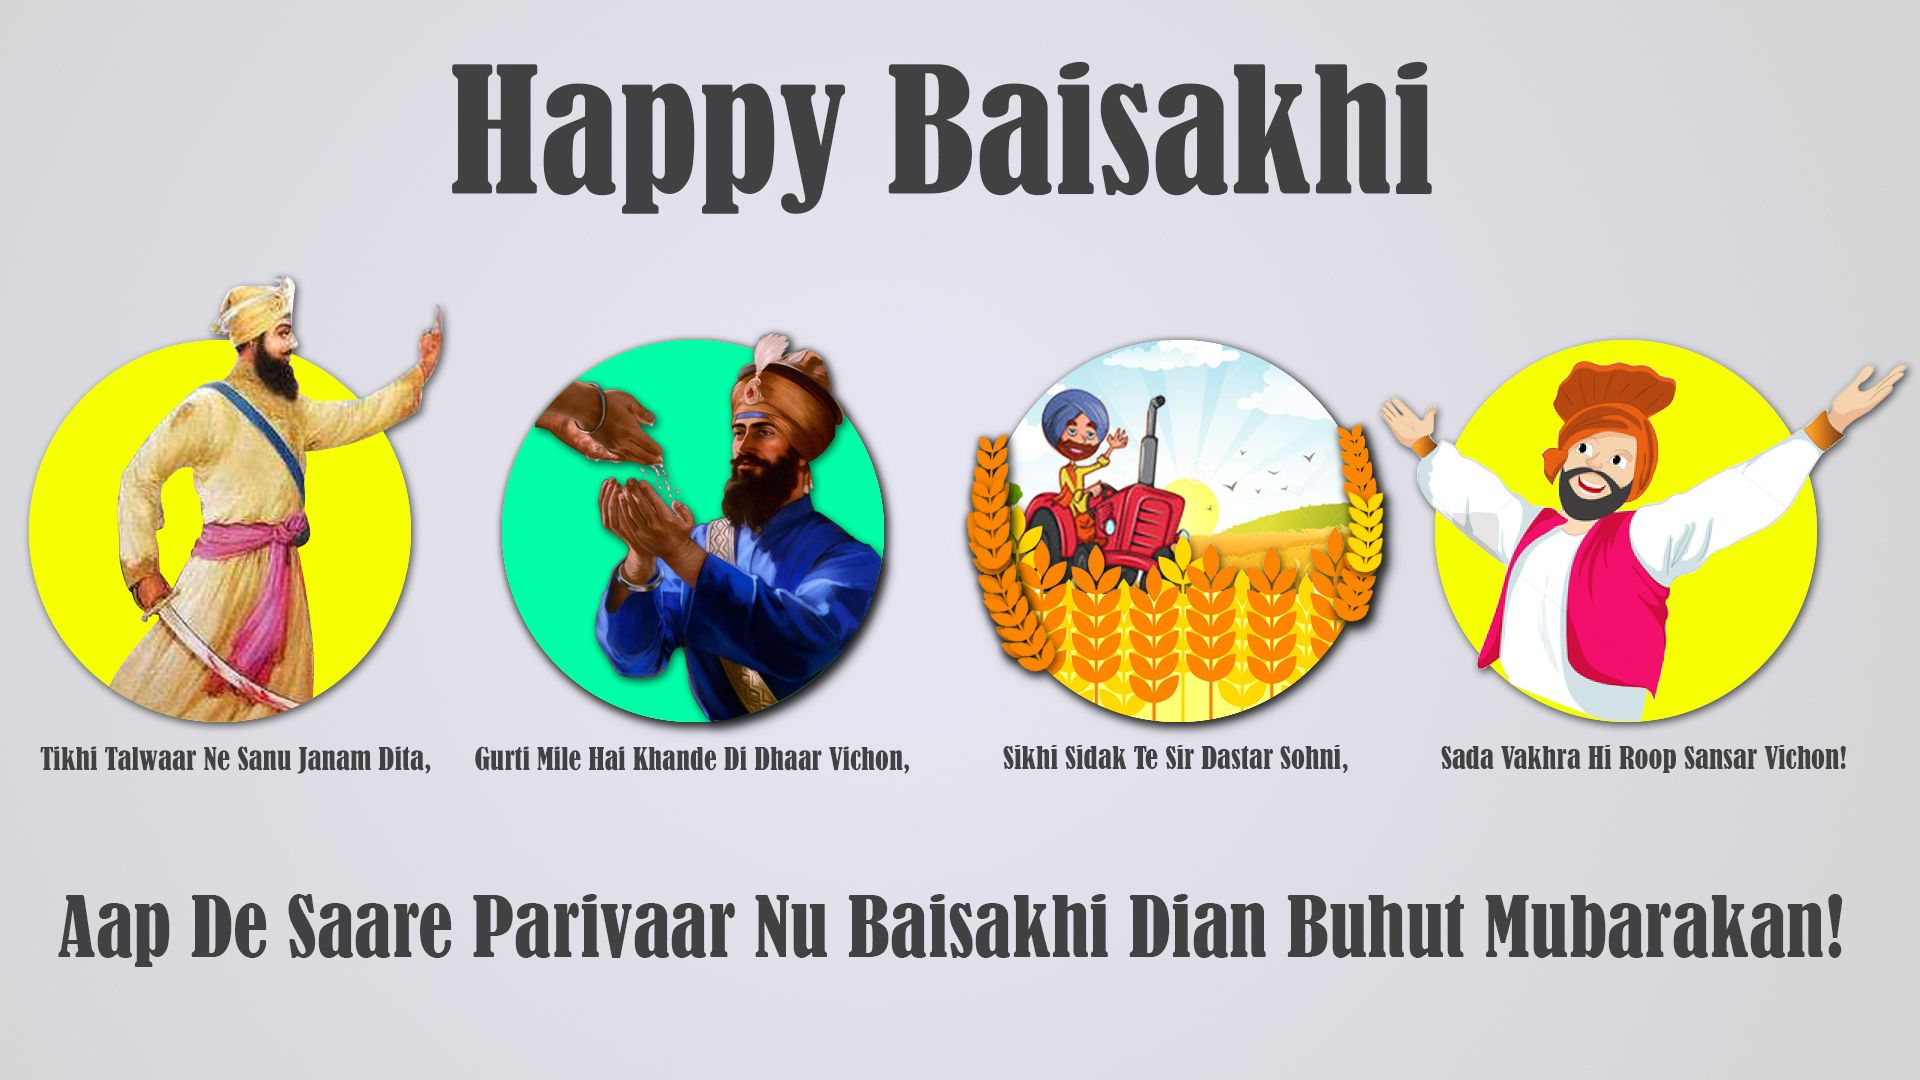 Celebrate Baisakhi With Your Family And Relatives And - America's Swimming Pool Company , HD Wallpaper & Backgrounds